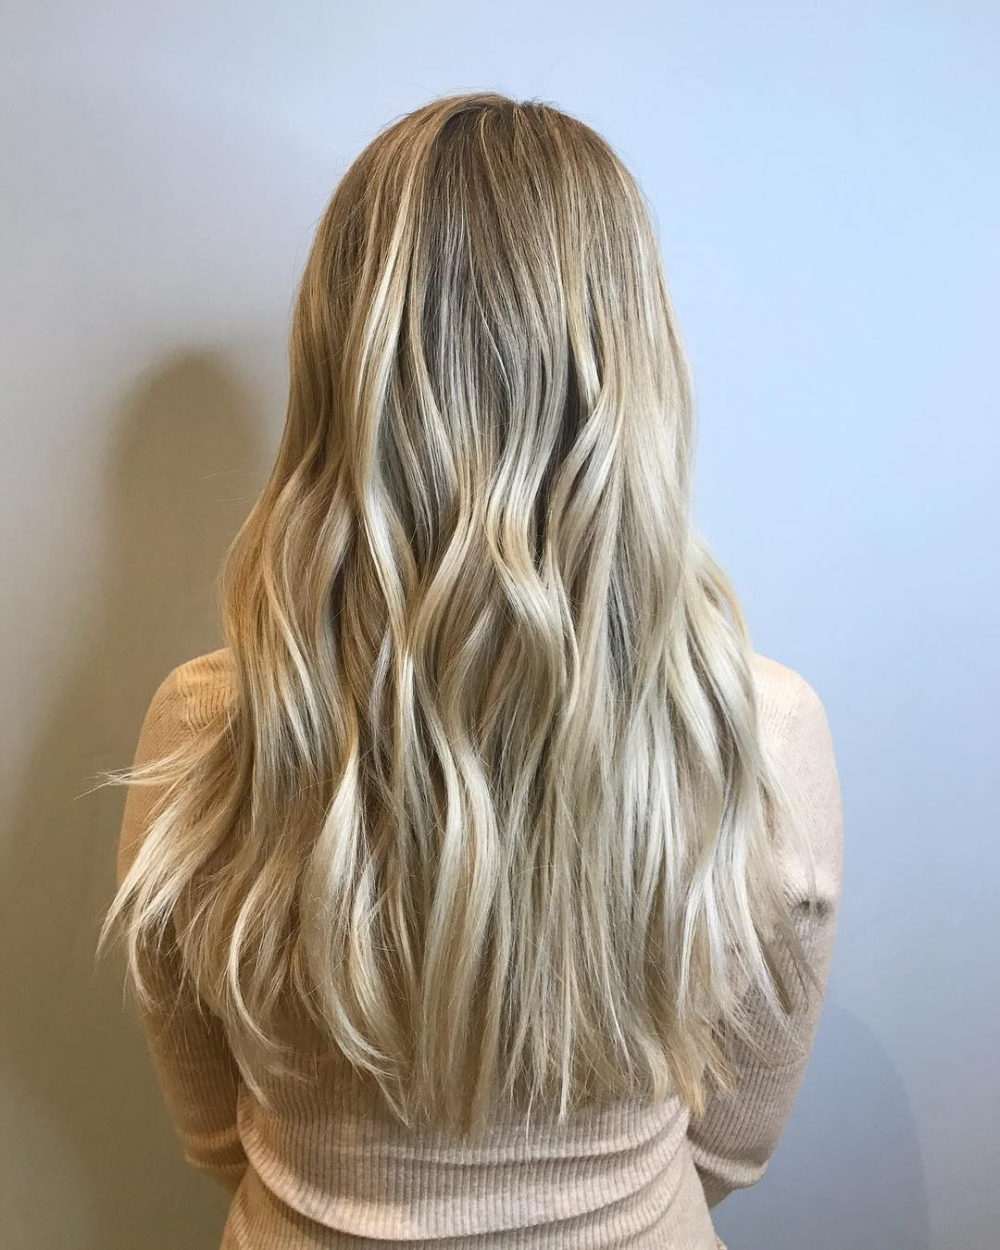 Well Liked No Fuss Dirty Blonde Hairstyles In 30 Top Long Blonde Hair Ideas – Bombshell Alert! (View 20 of 20)